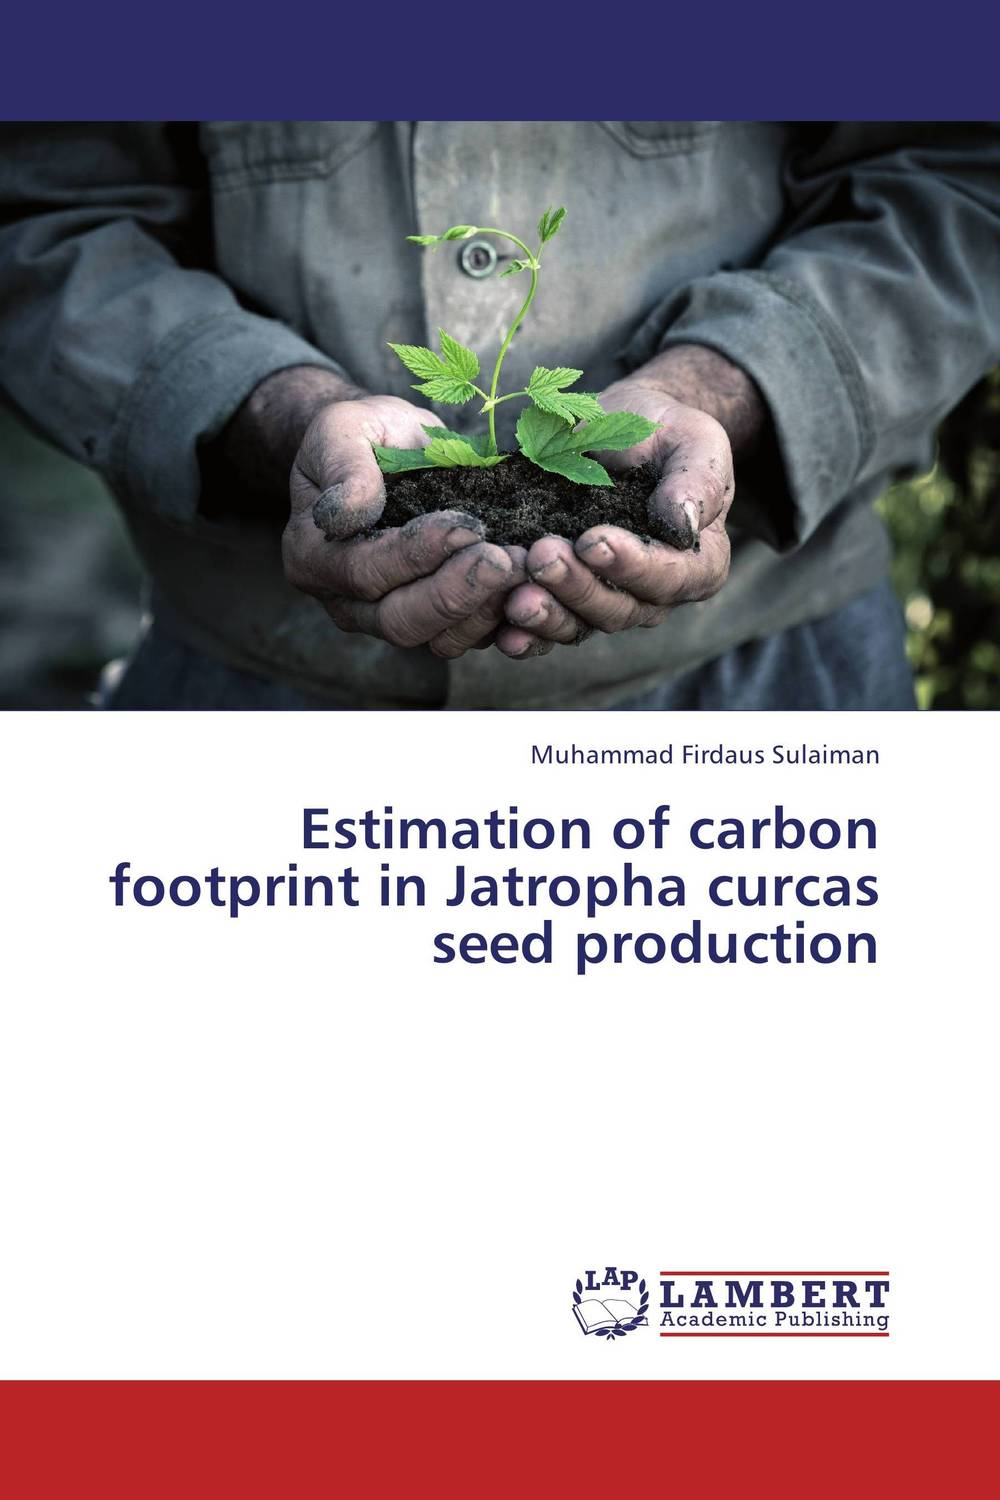 Estimation of carbon footprint in Jatropha curcas seed production muhammad firdaus sulaiman estimation of carbon footprint in jatropha curcas seed production